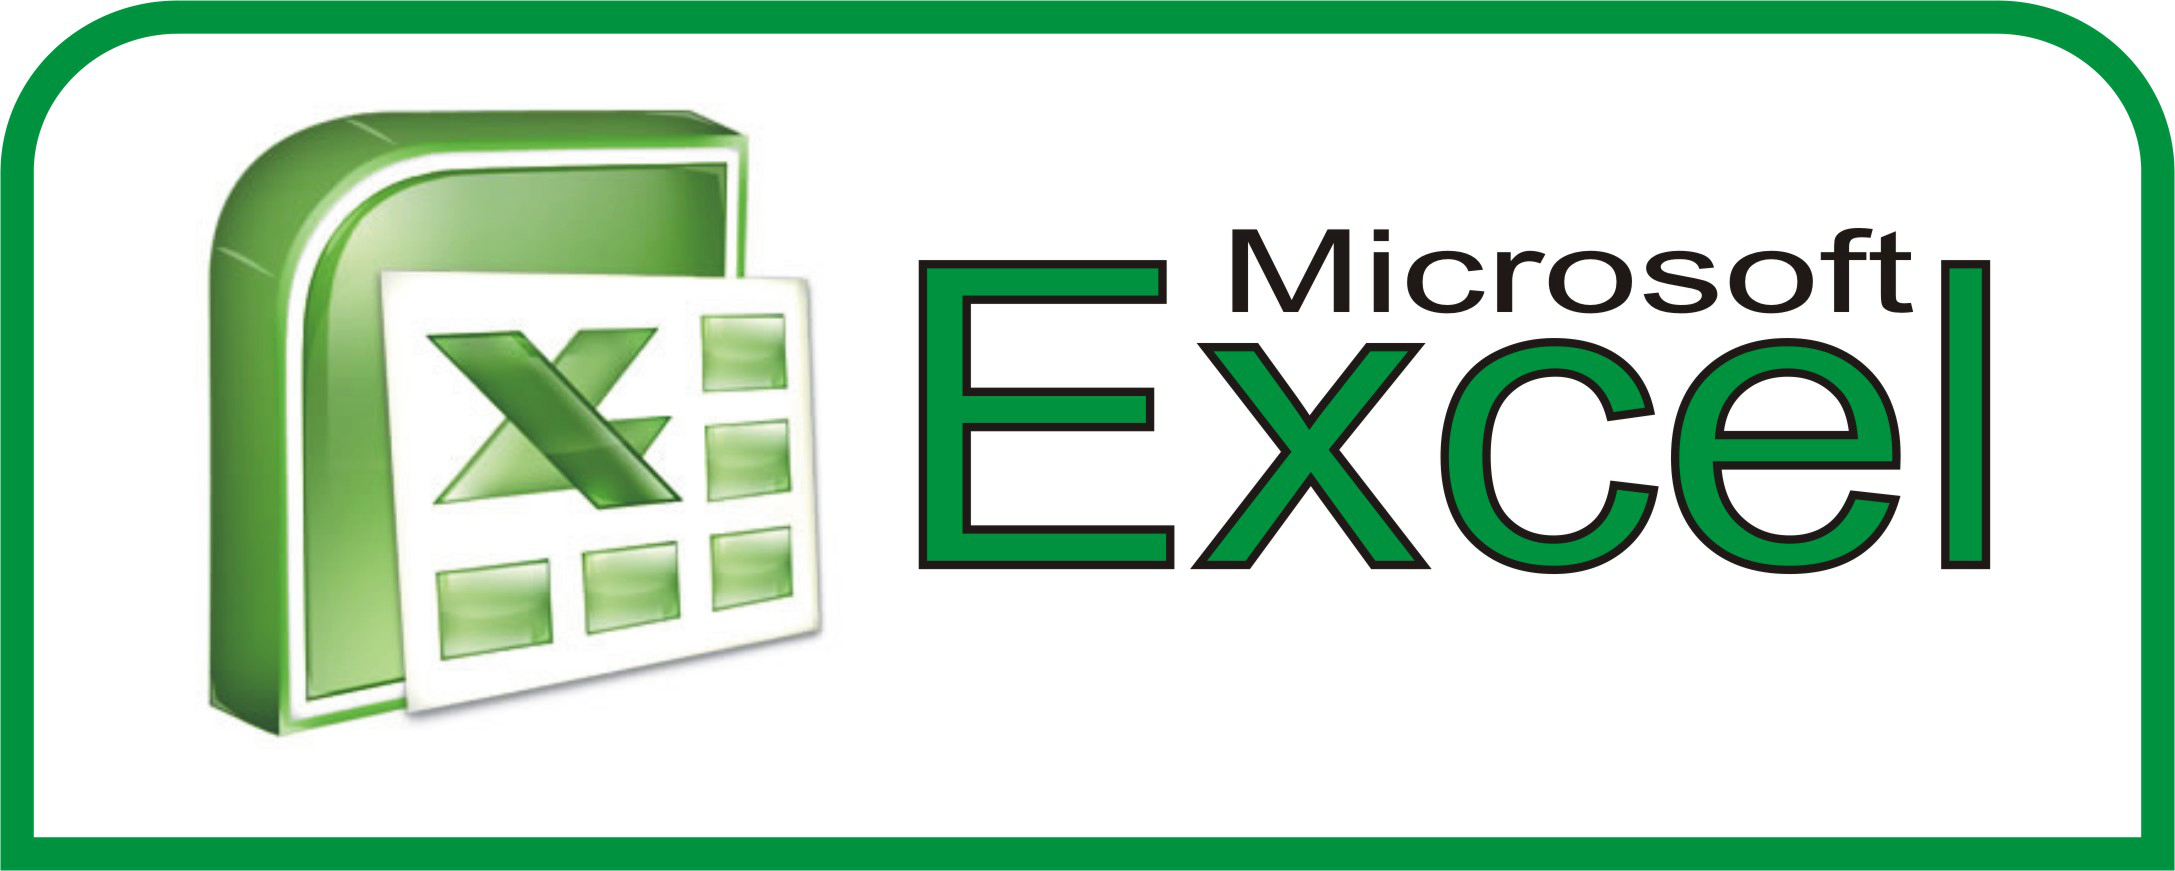 Ediblewildsus  Wonderful  Excel Shortcuts You Probably Didnt Know About  Techdissected With Engaging How To Do Data Analysis In Excel Besides Microsoft Word And Excel For Mac Furthermore Run Time Error  Excel With Easy On The Eye Dynamic Charts In Excel Also Dynamic Drop Down List Excel In Addition Convert Pdf To Excel Mac And How To Unprotect Excel Sheet Without Password As Well As Excel Percent Increase Additionally Excel Basic From Techdissectedcom With Ediblewildsus  Engaging  Excel Shortcuts You Probably Didnt Know About  Techdissected With Easy On The Eye How To Do Data Analysis In Excel Besides Microsoft Word And Excel For Mac Furthermore Run Time Error  Excel And Wonderful Dynamic Charts In Excel Also Dynamic Drop Down List Excel In Addition Convert Pdf To Excel Mac From Techdissectedcom